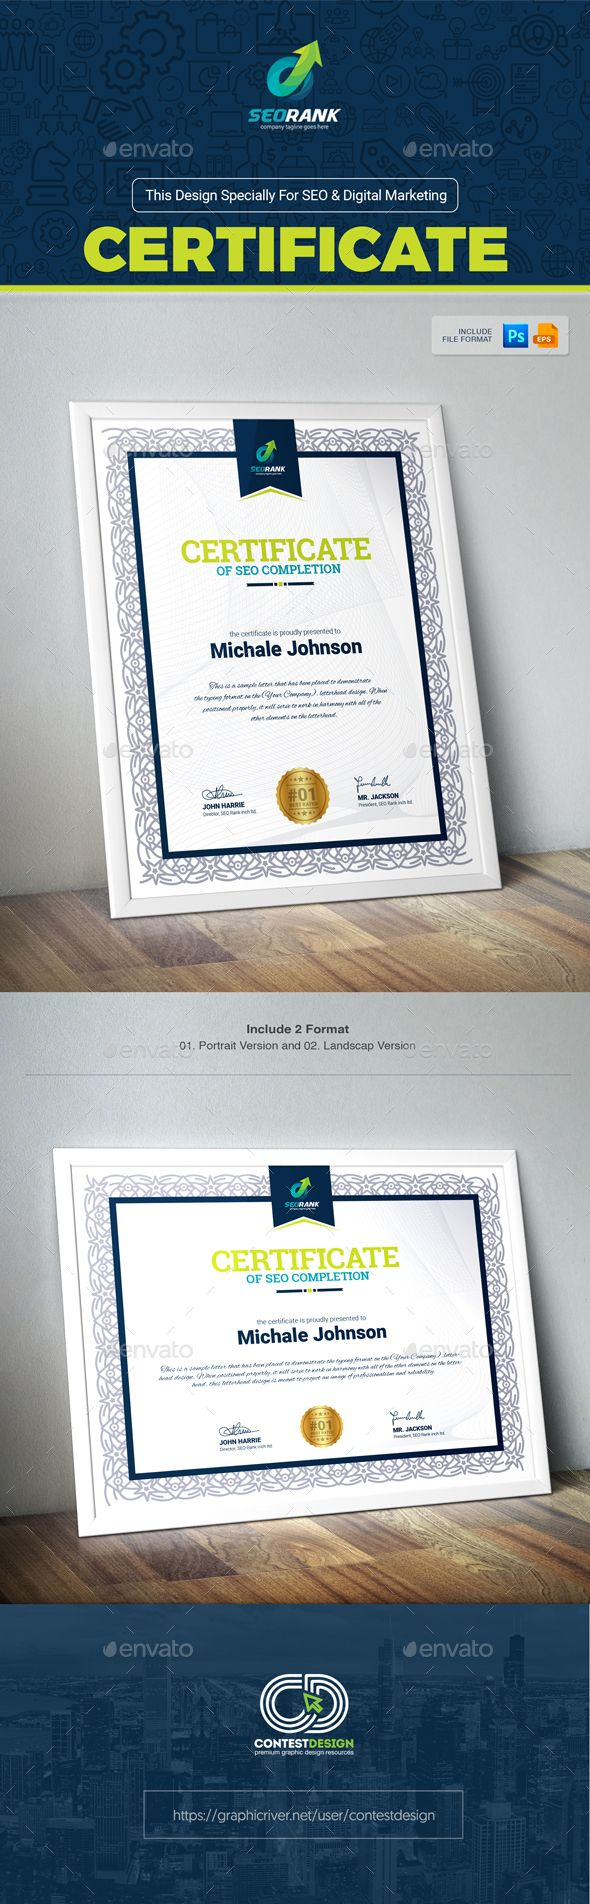 Certificate of Completion for SEO (Search Engine Optimization) & Digital Marketing Agency / Company